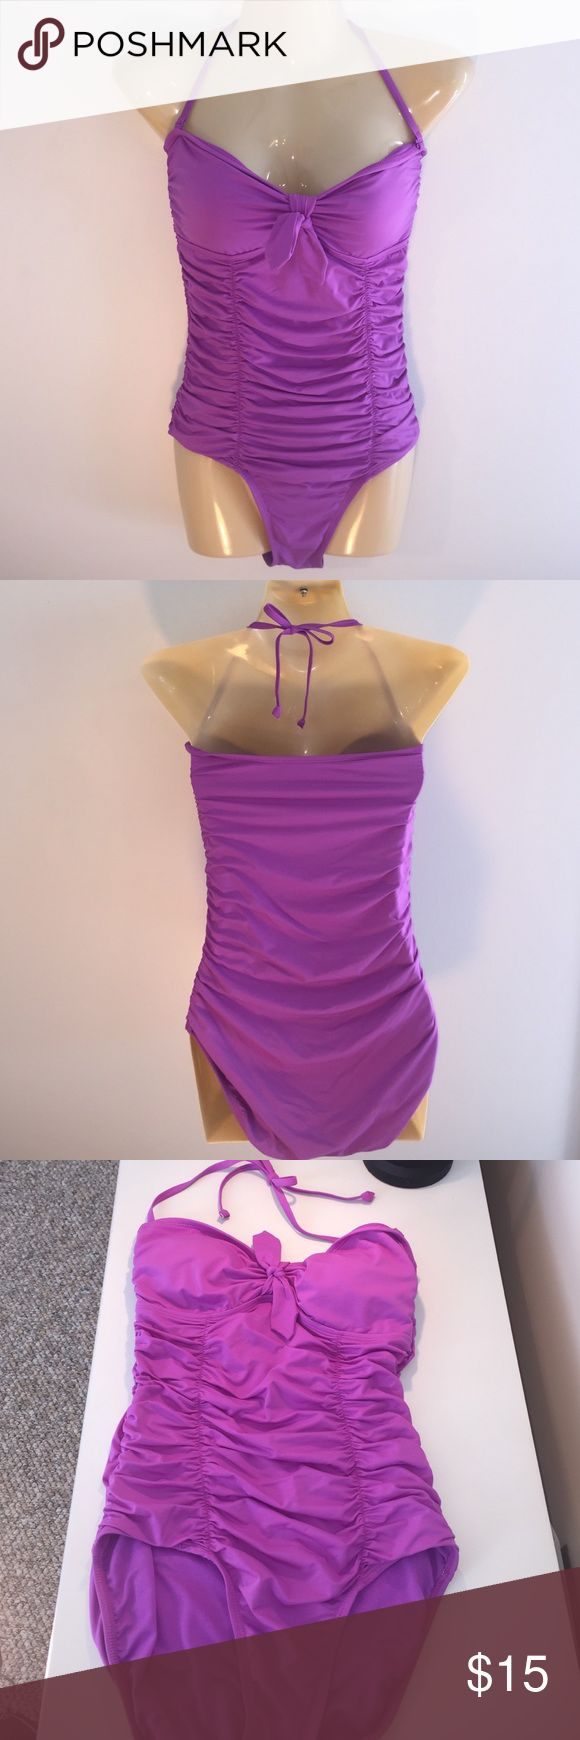 Old Navy Size Small Classy Halter One Piece Old Navy Size Small Classy Halter One Piece Front Runching Slims Tummy, Padded Cups, Detachable Neck Tie, Like New Old Navy Swim One Pieces